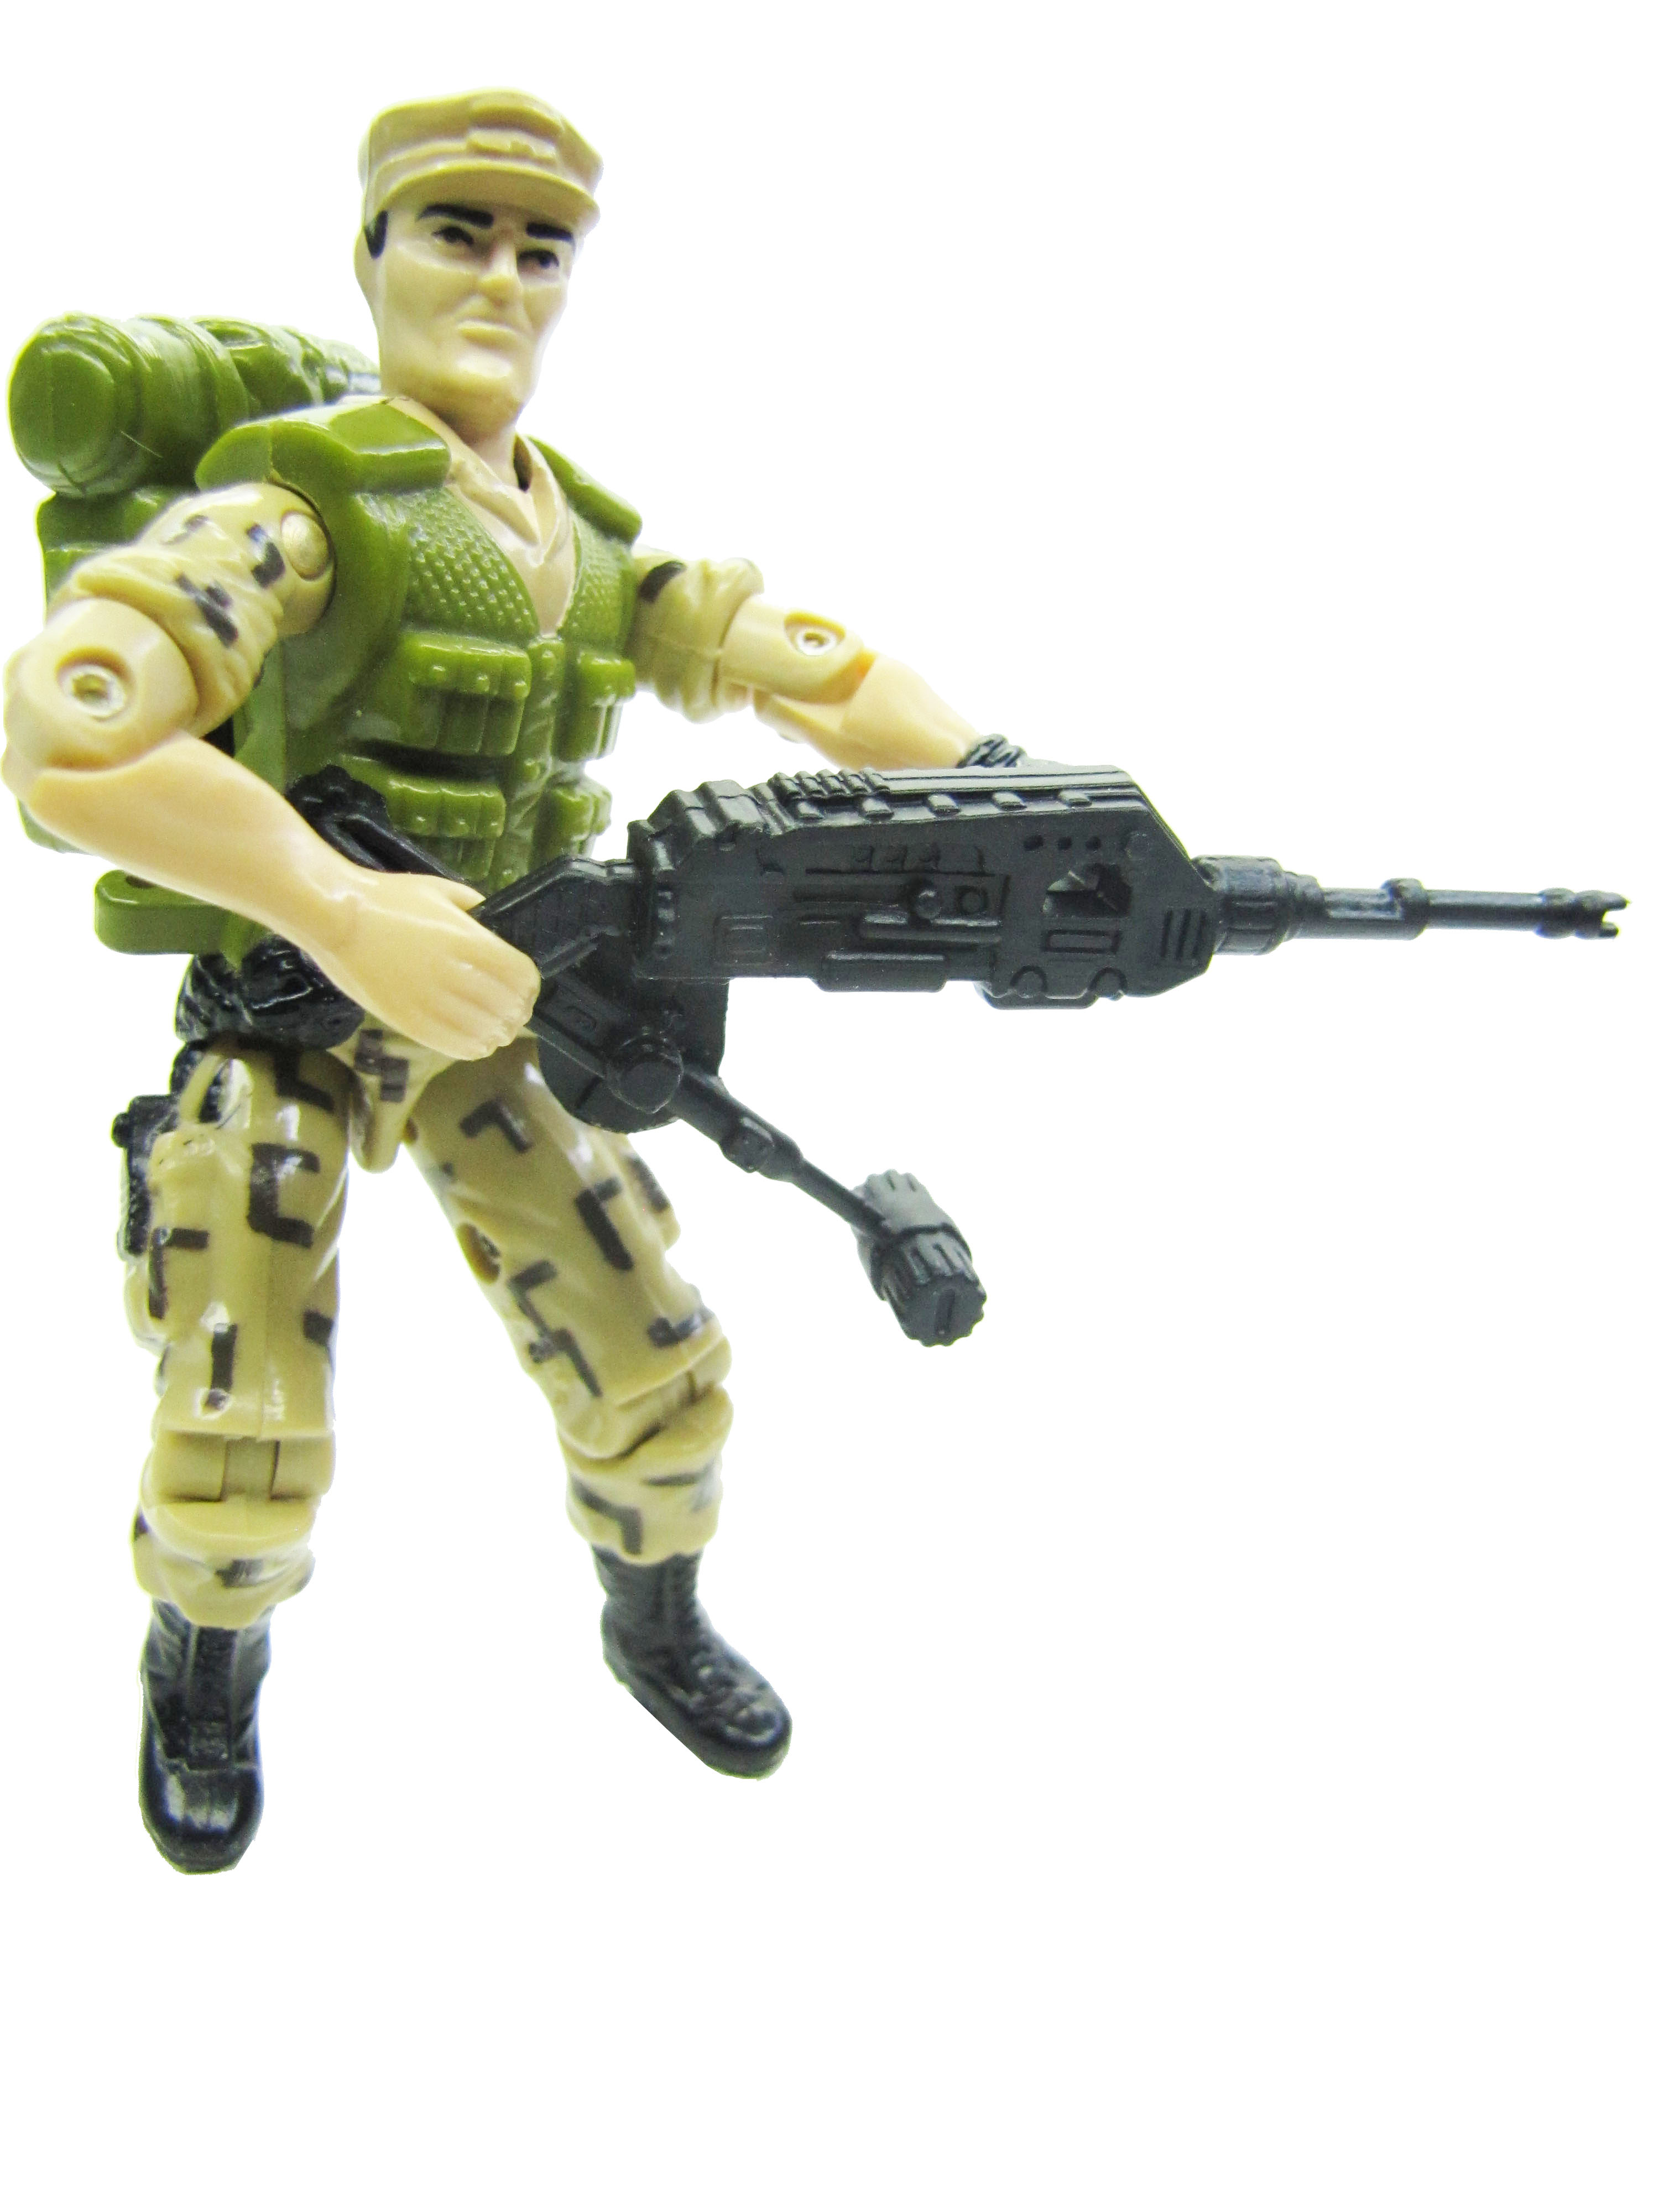 1988 GIJoe REPEATER STEADI-CAM MACHINE GUNNER Complete